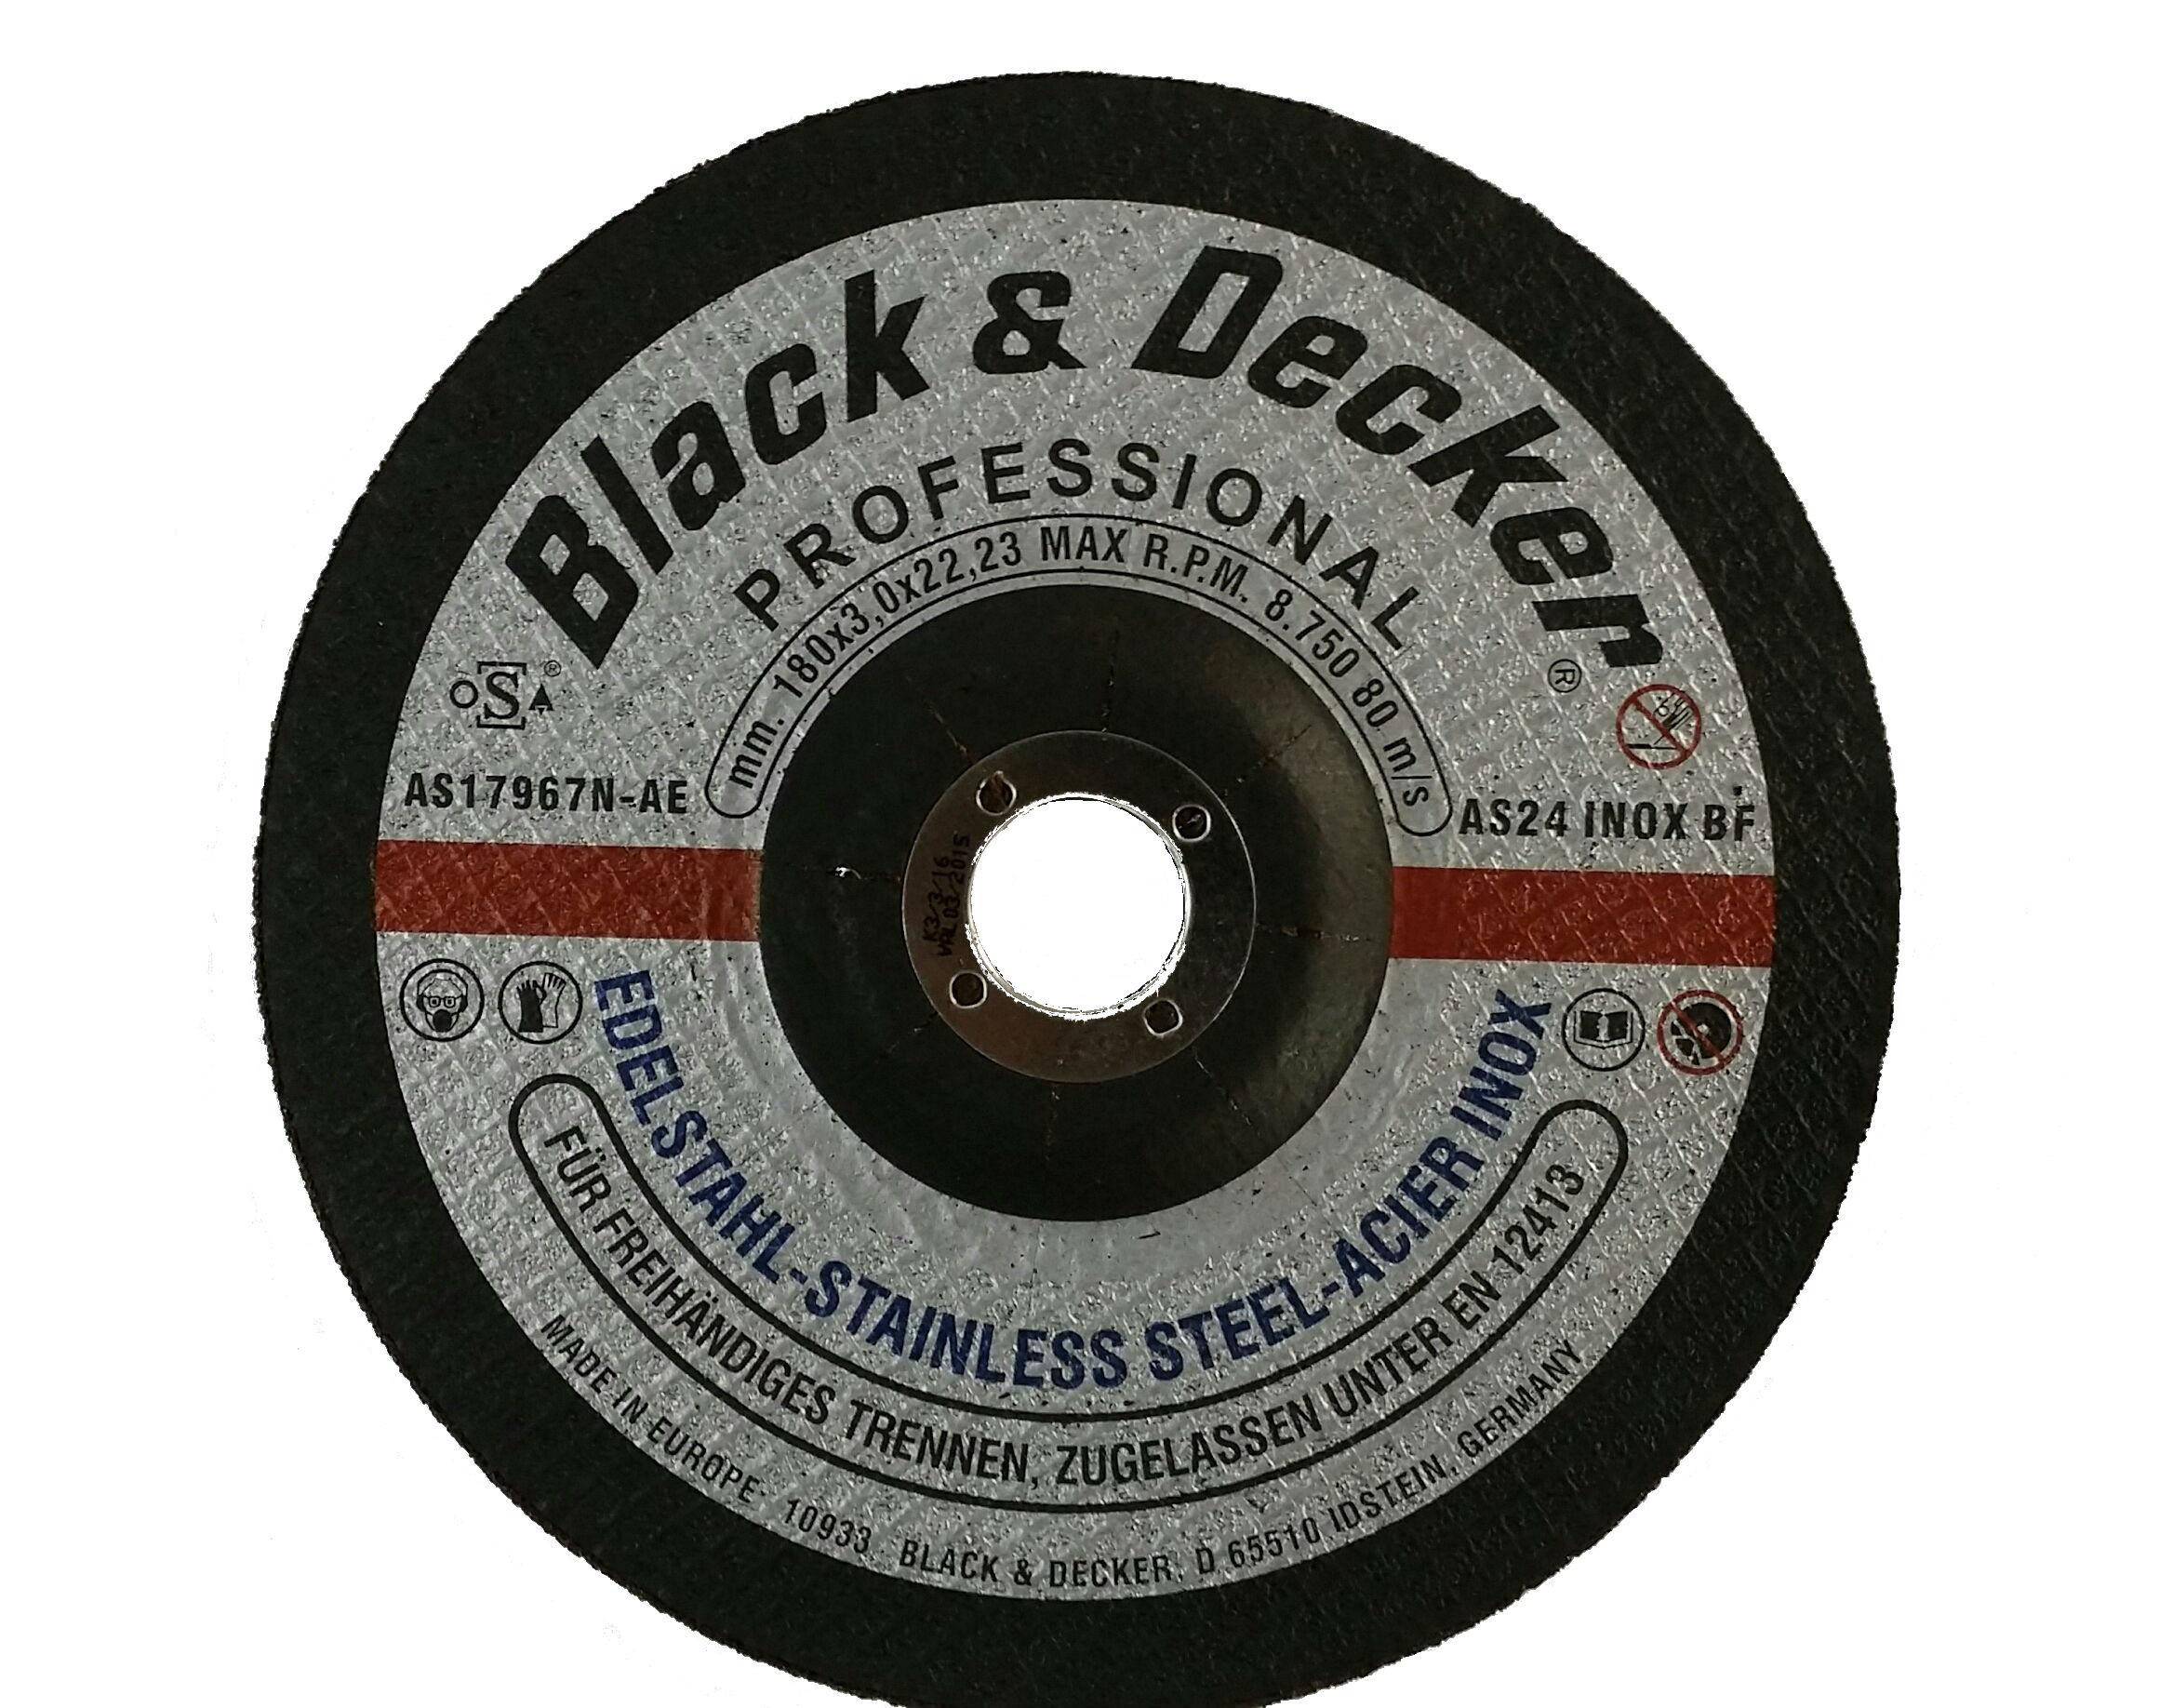 Black & Decker AS17967N-AE - 7-inch S.Steel Cutting Disc